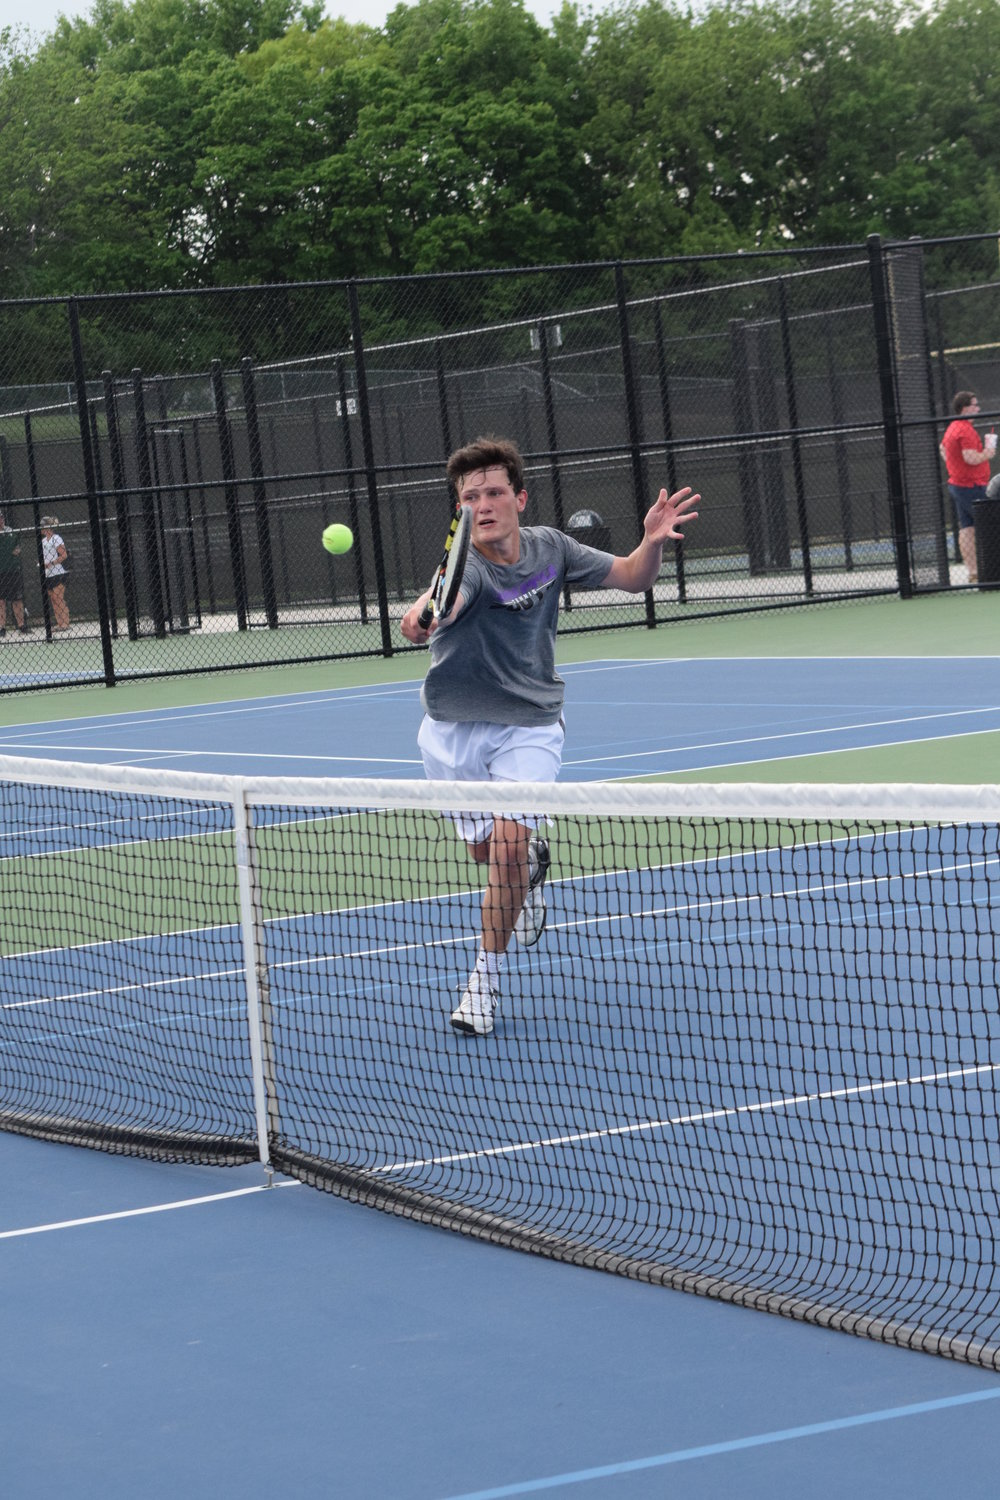 BRYCE MERENESS/Citizen photo Park Hill South's Andrew Robaska gets to the net to return a volley during the Class 2 Sectional 8 on Tuesday, May 15, at the Platte County High School tennis courts. Robaska and doubles teammate Cooper Hayes won and will go the the state finals.